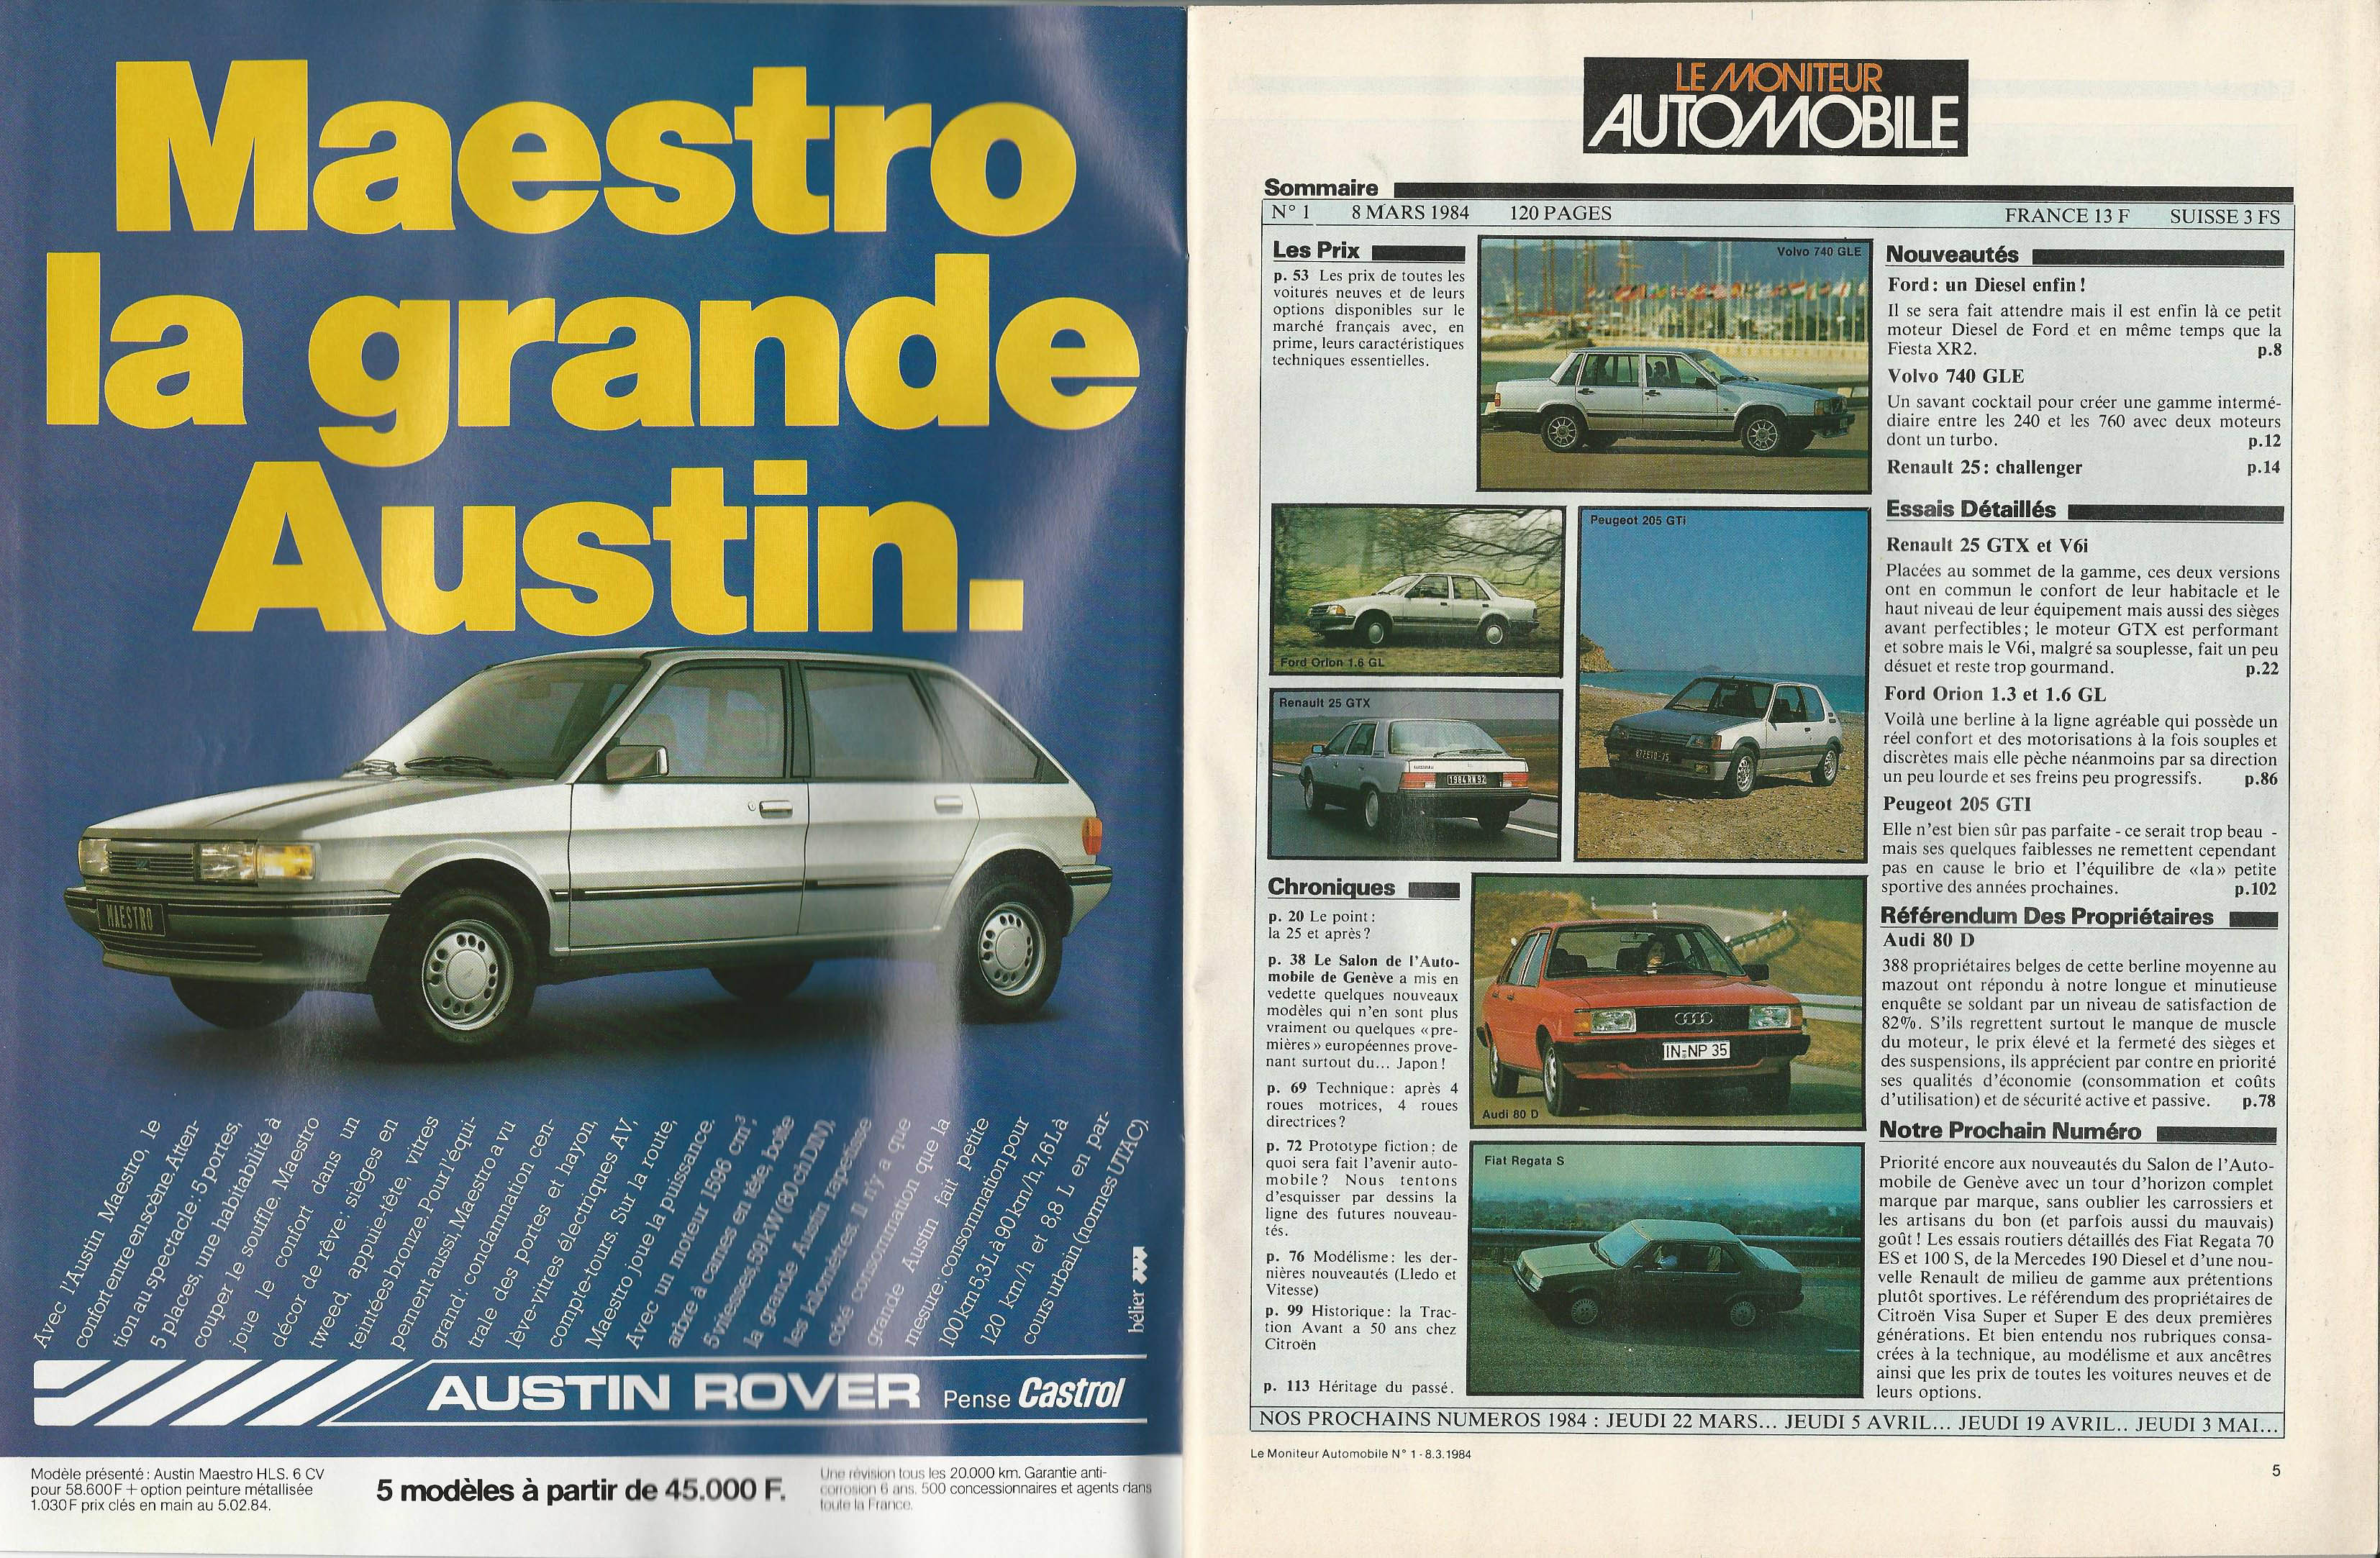 Moniteur Automobile 01 - 08 Mars 1984 (3)